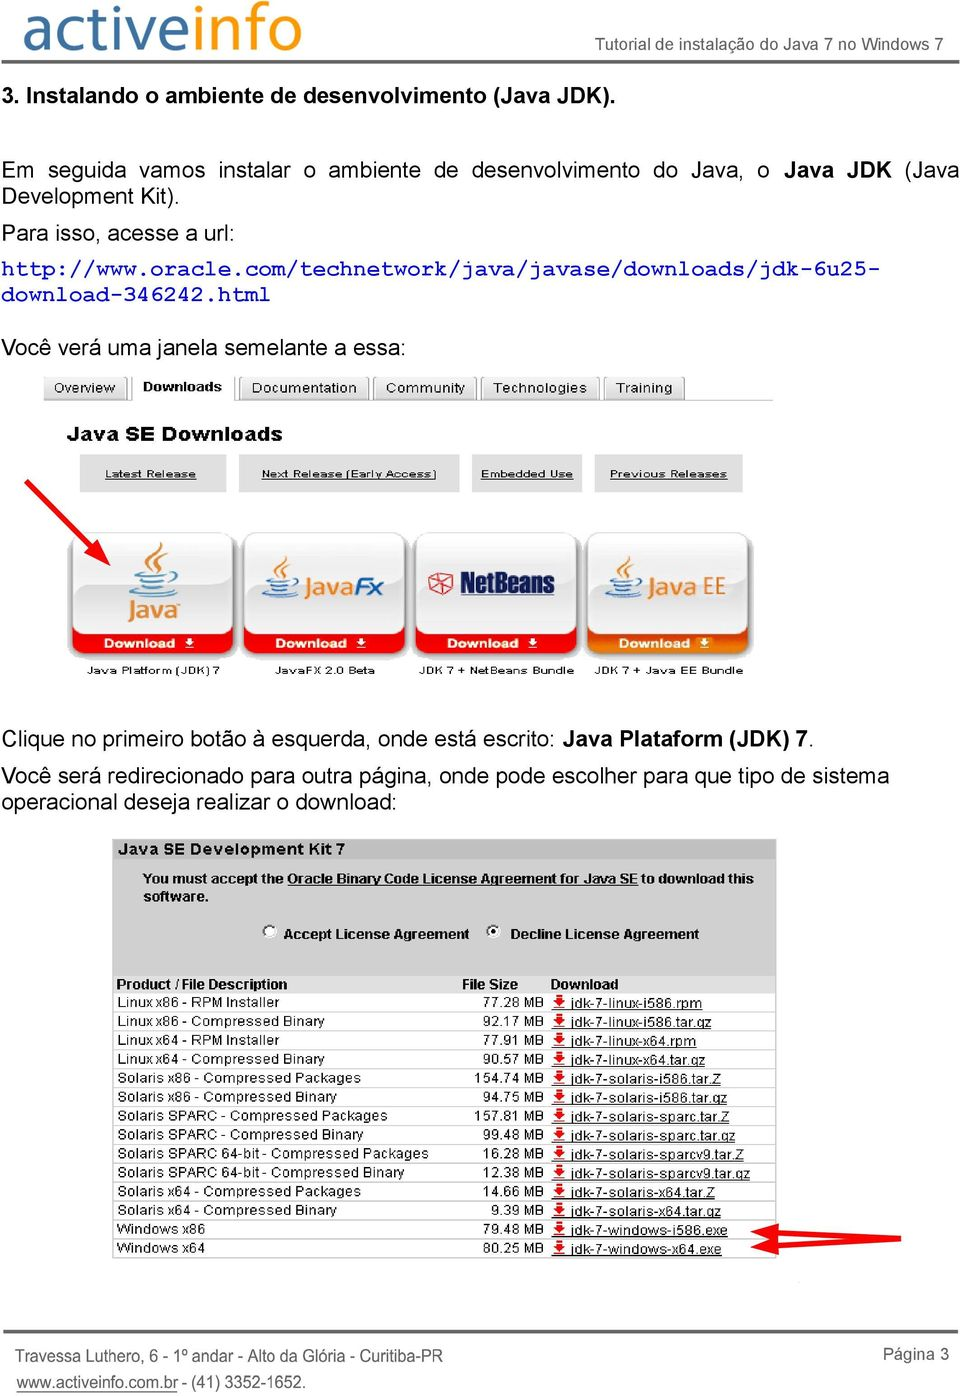 Kit). Para isso, acesse a url: http://www.oracle.com/technetwork/java/javase/downloads/jdk-6u25- download-346242.